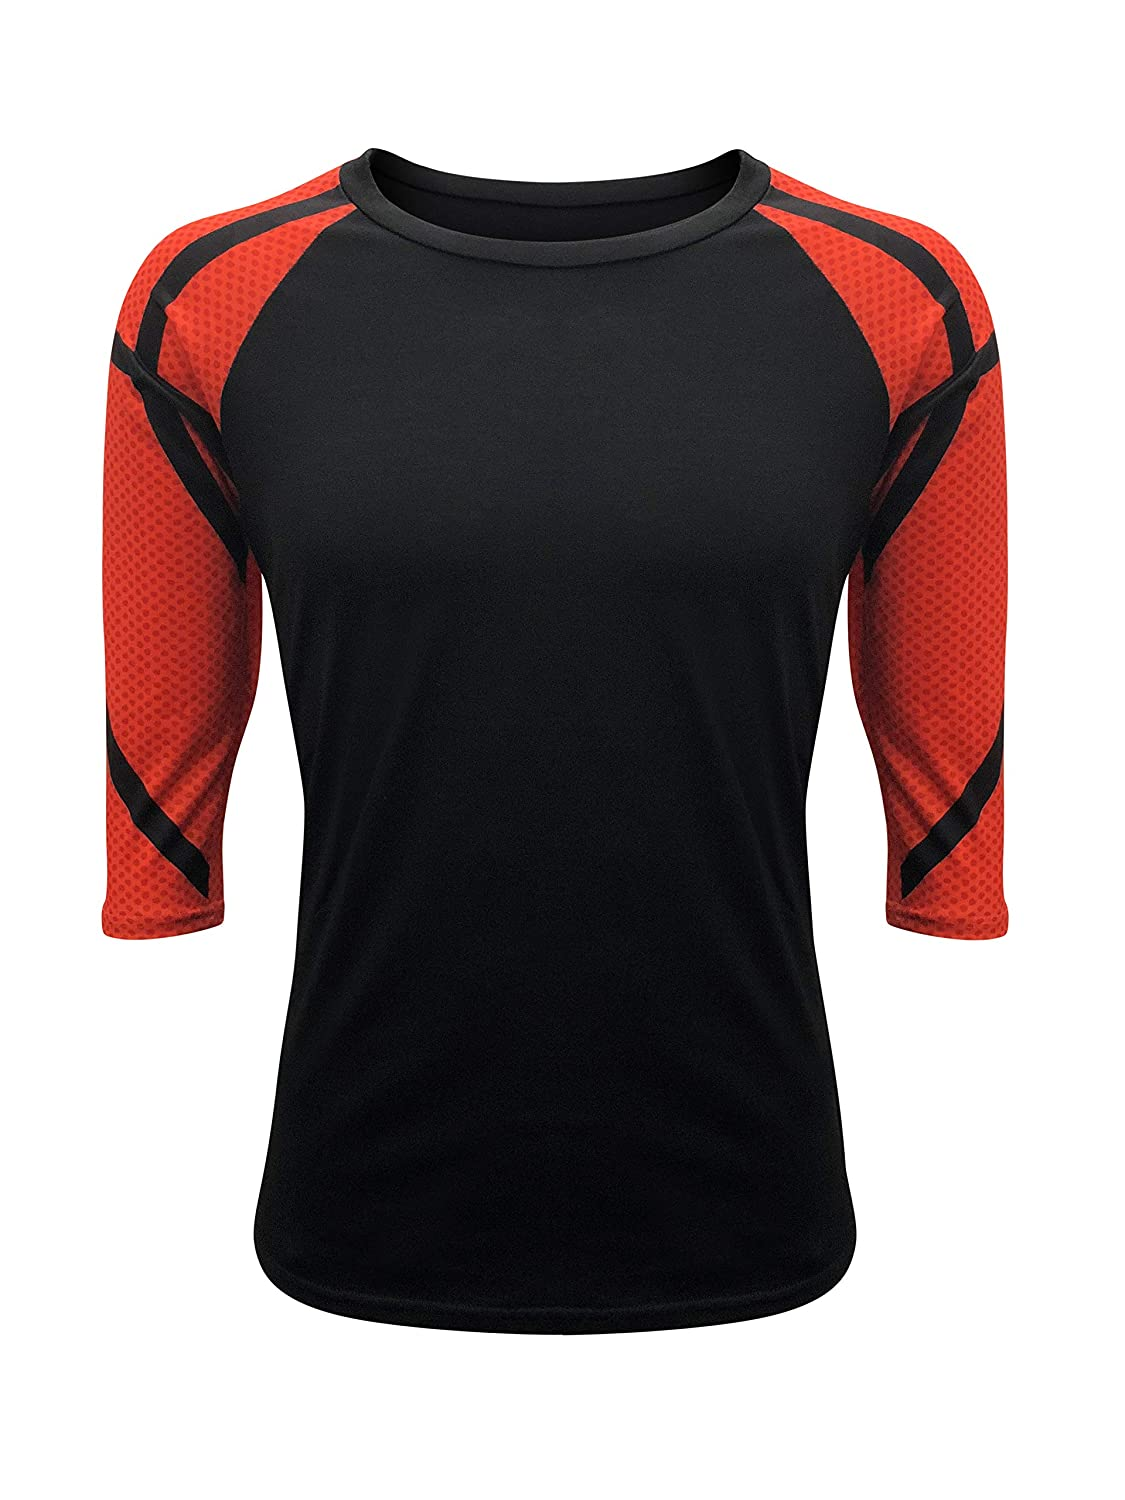 Iltex Basketball Raglan T Shirt Print Sleeves Sports Athletic Black